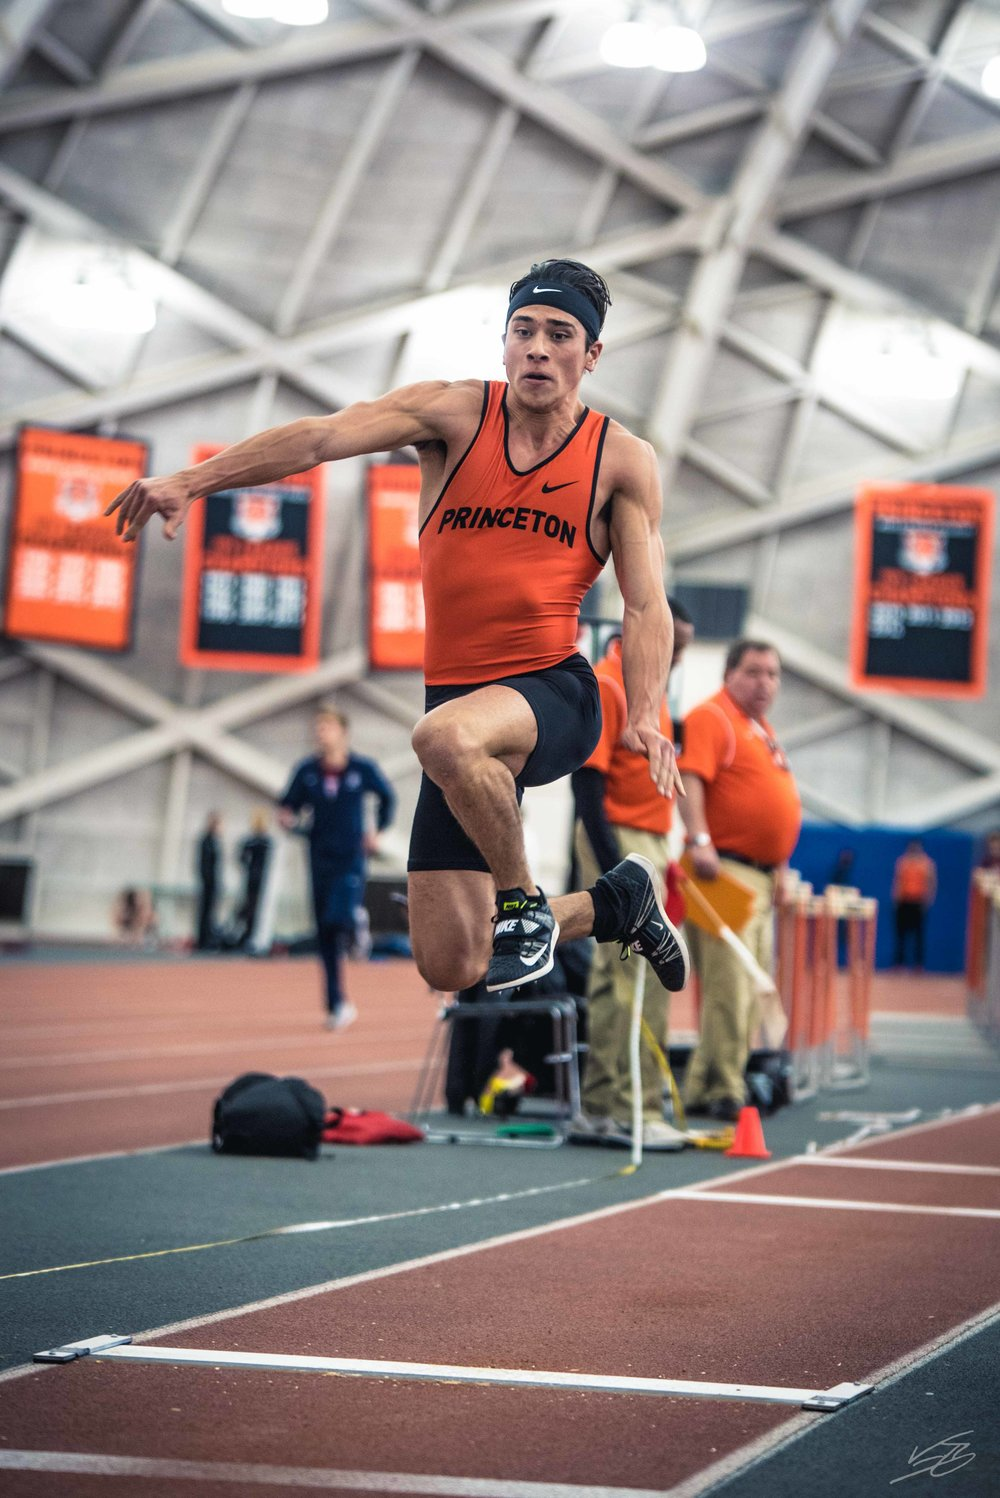 Princeton Track Team Home Meet